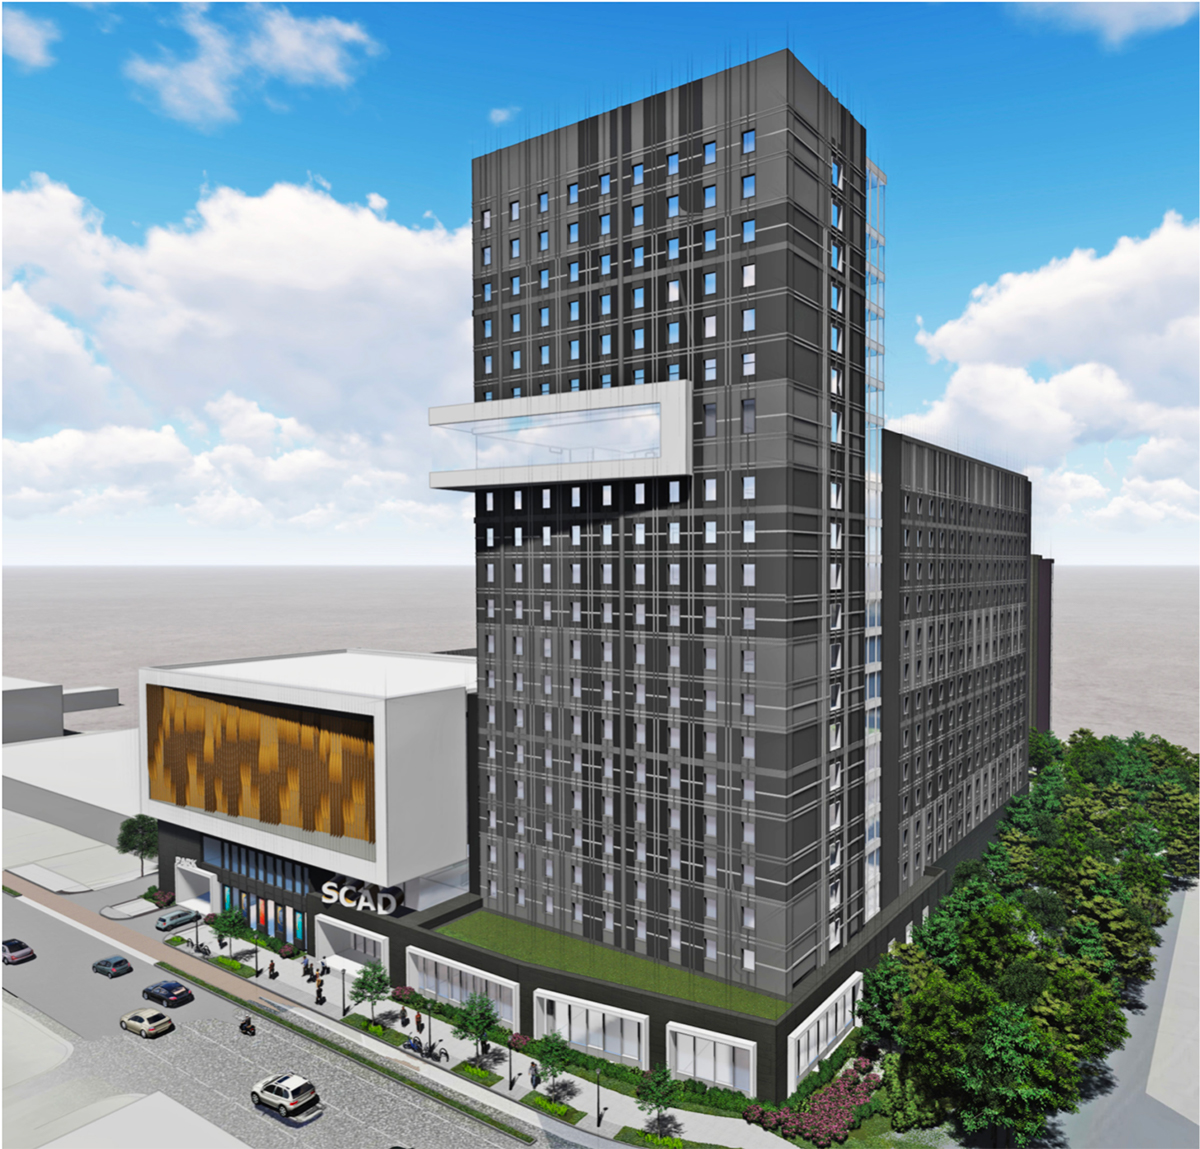 The Midtown Development Review Committee on November 12 saw designs for a 20-story mixed-use project by the Savannah College of Art and Design at 1470 Spring Street. The building would rise with the Buford-Spring connector roadway to its north.